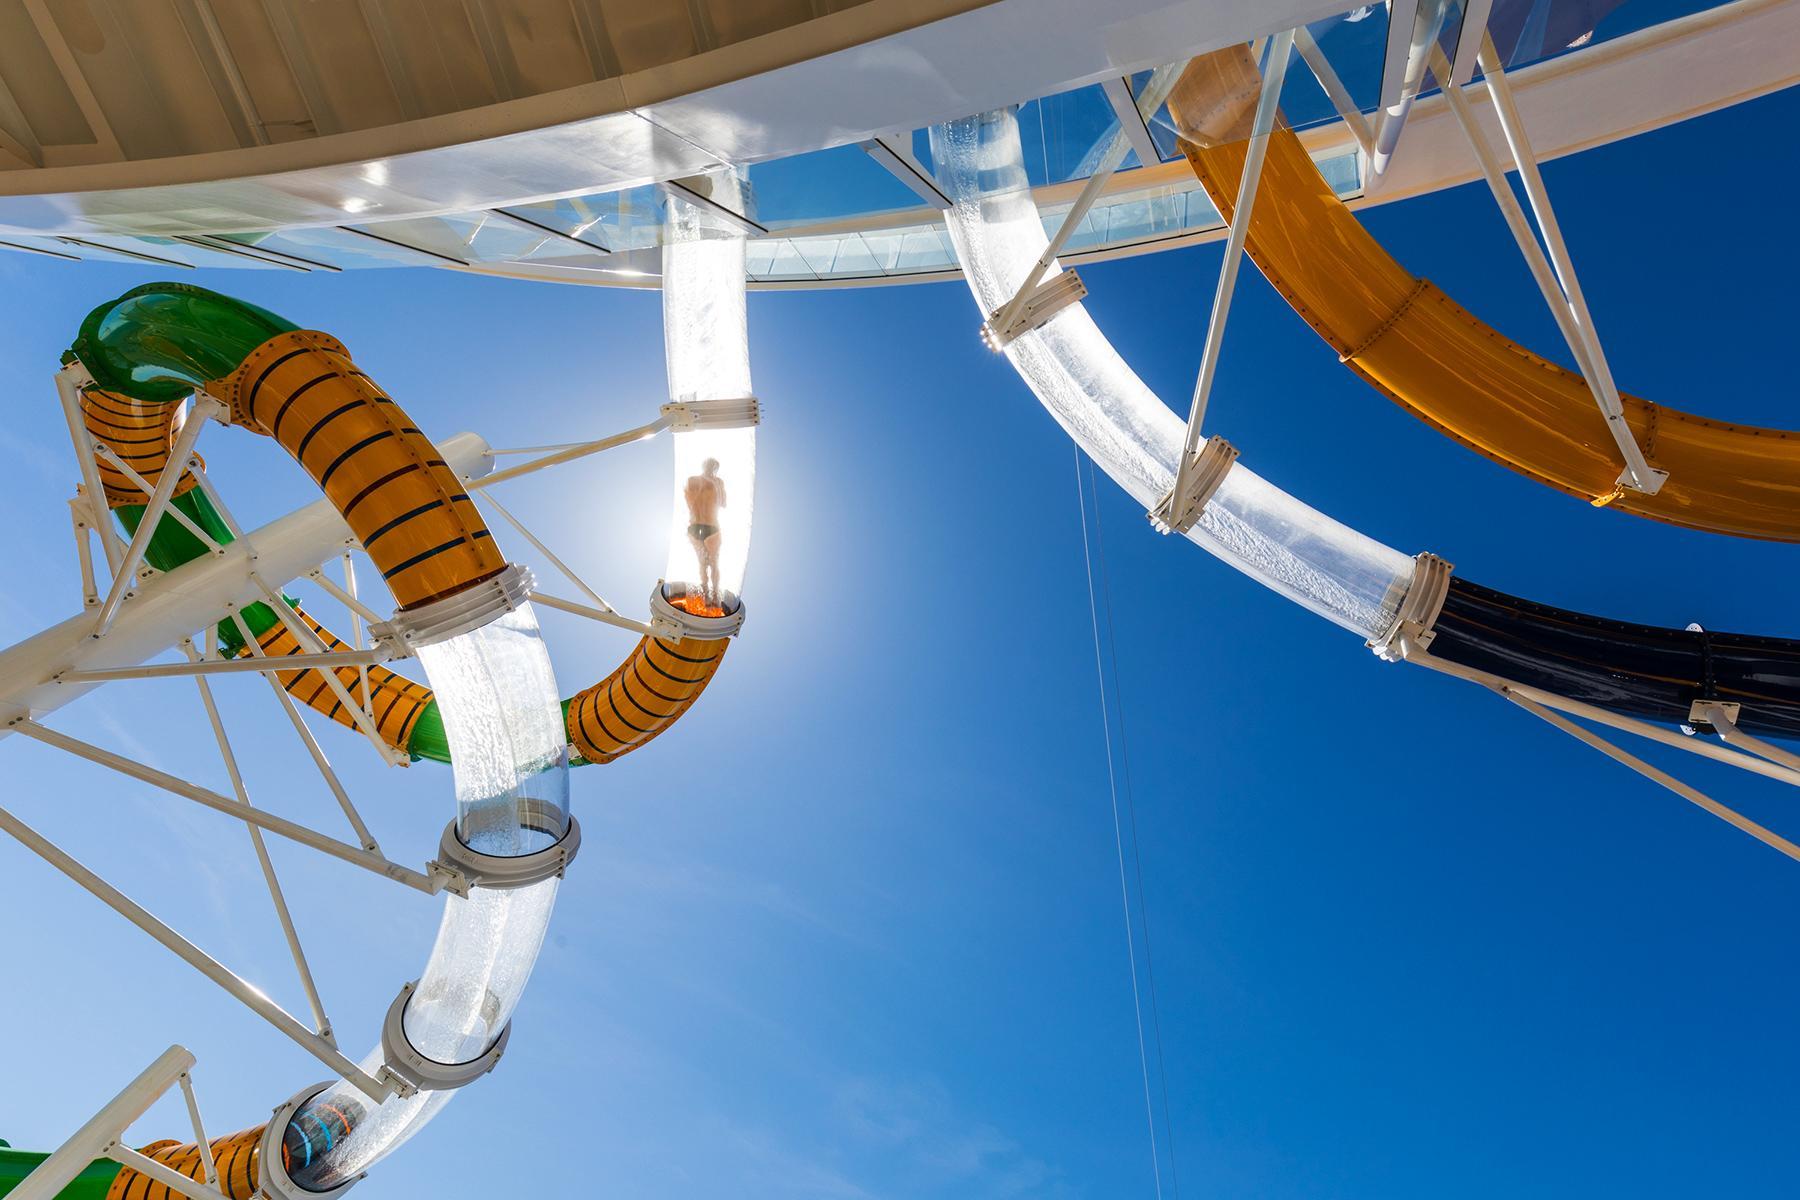 What It's Like to Sail on the Royal Caribbean Symphony of the Seas